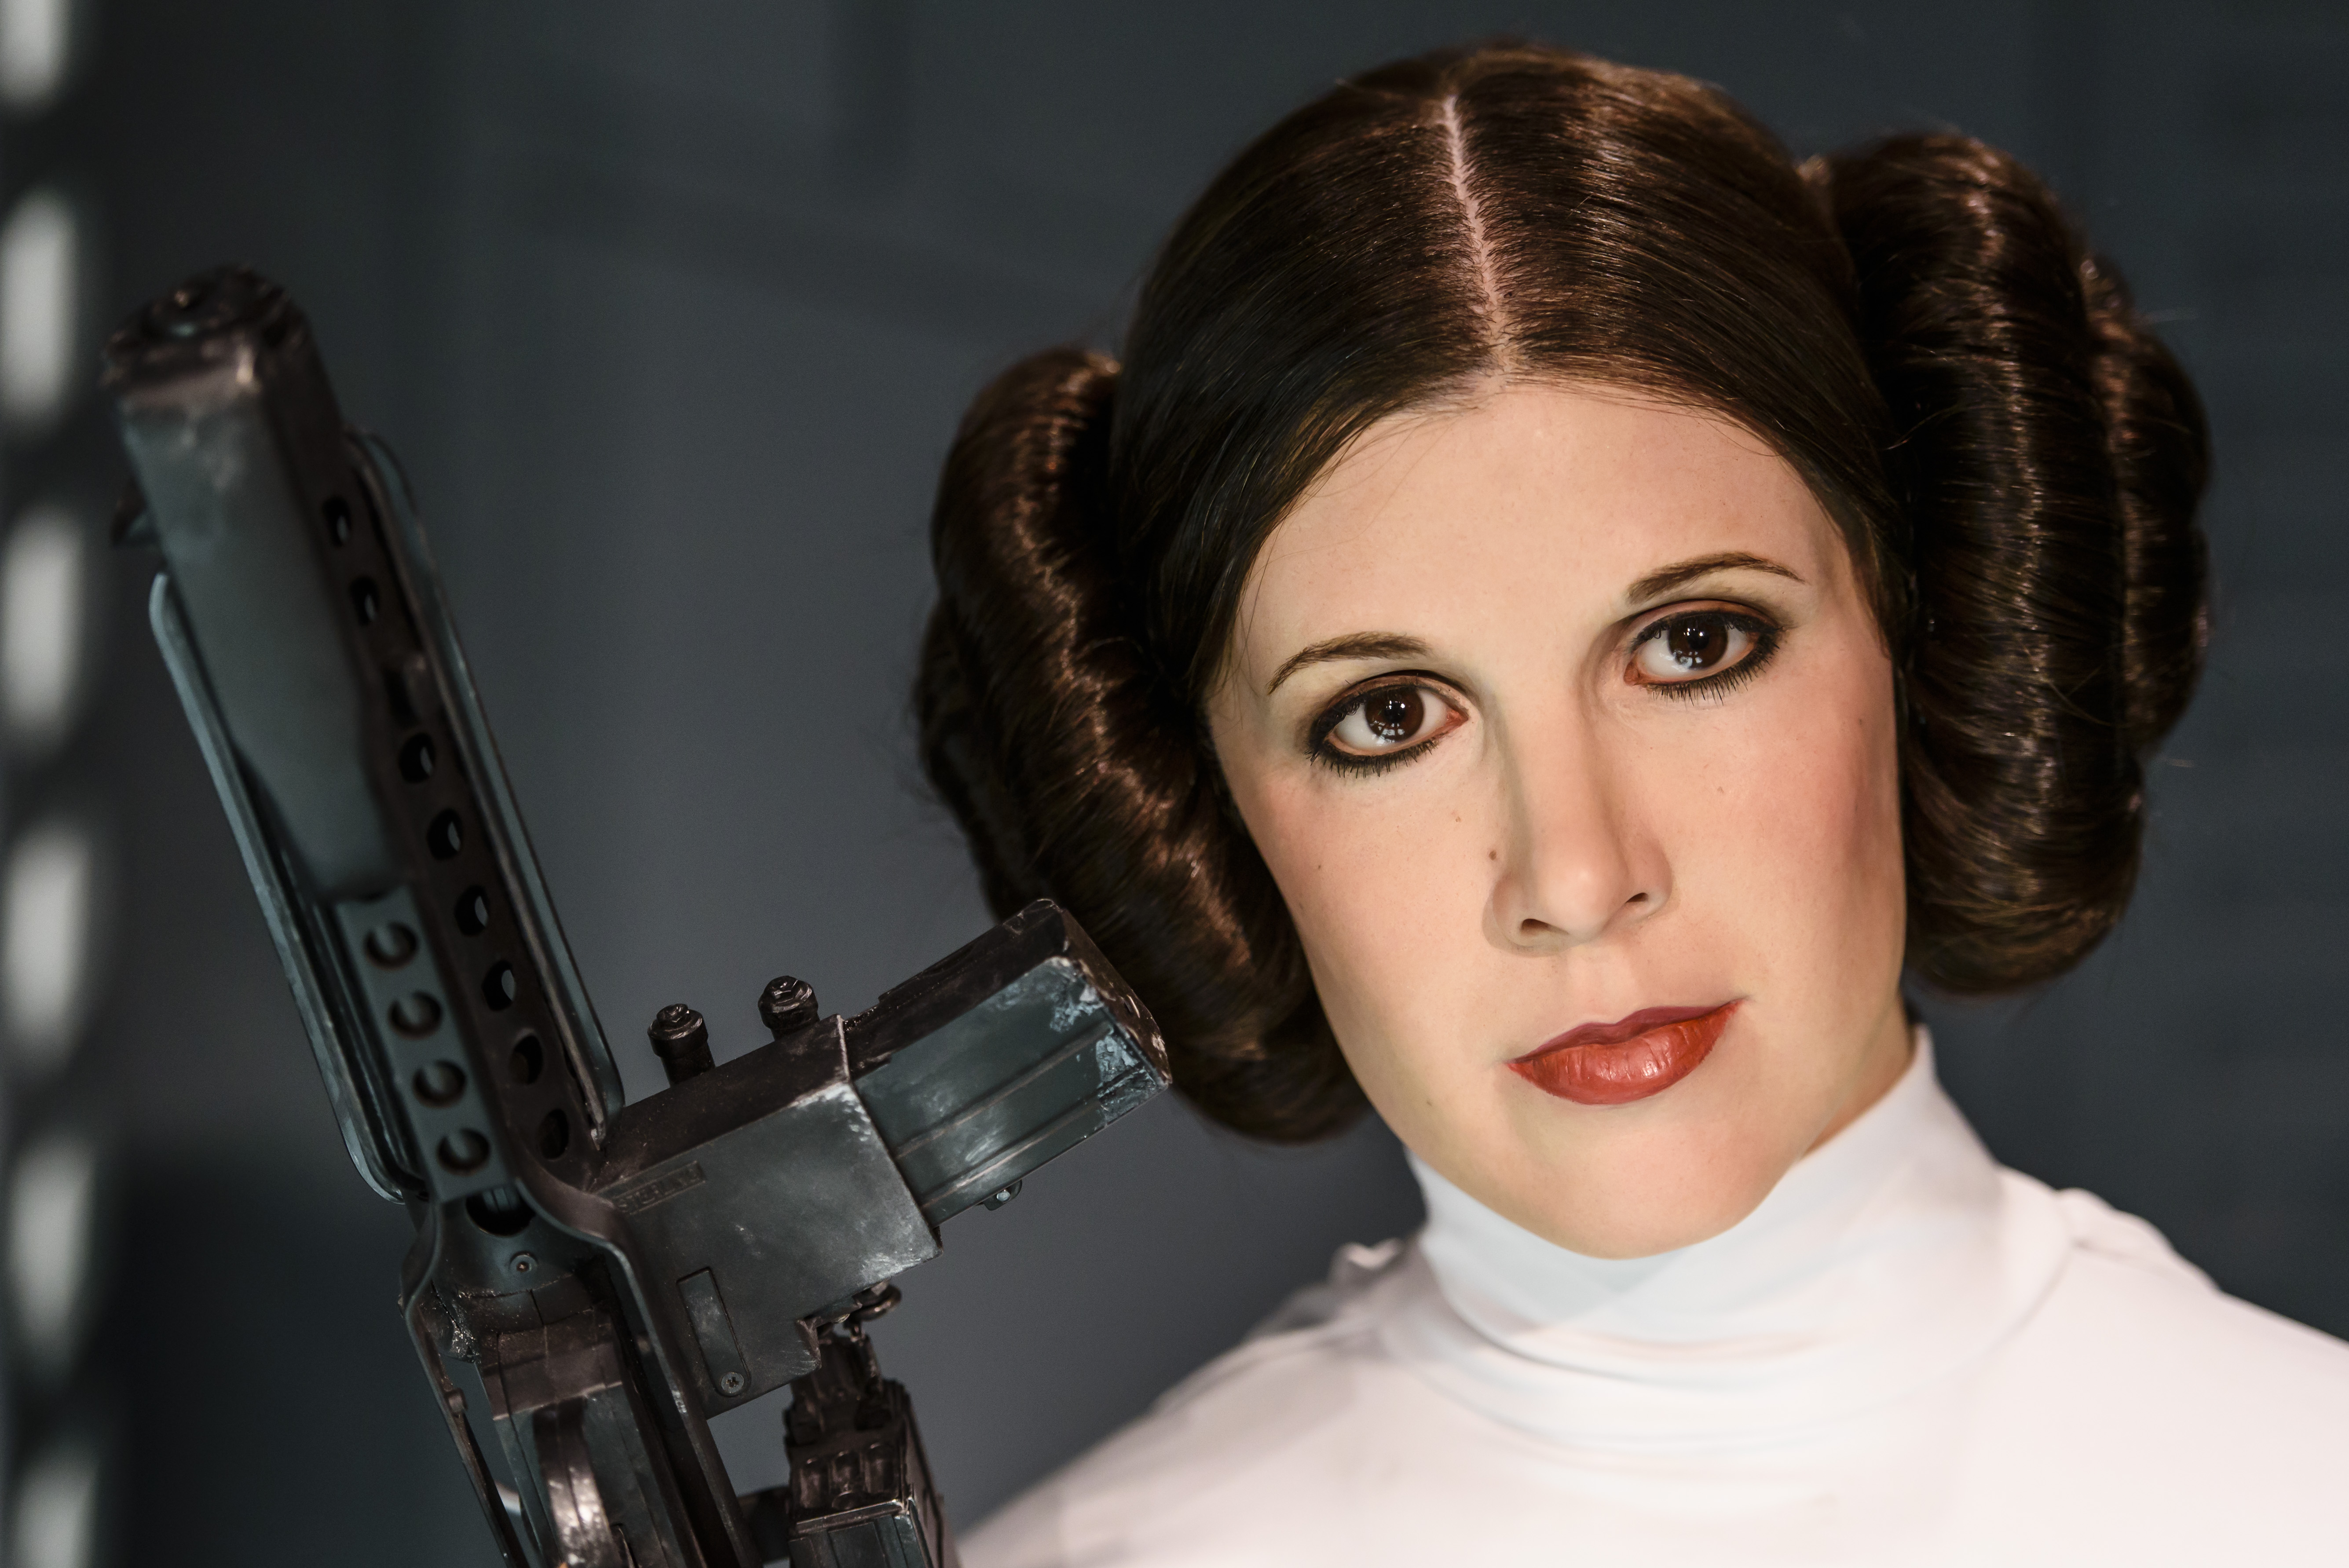 Carrie fisher star wars — pic 15